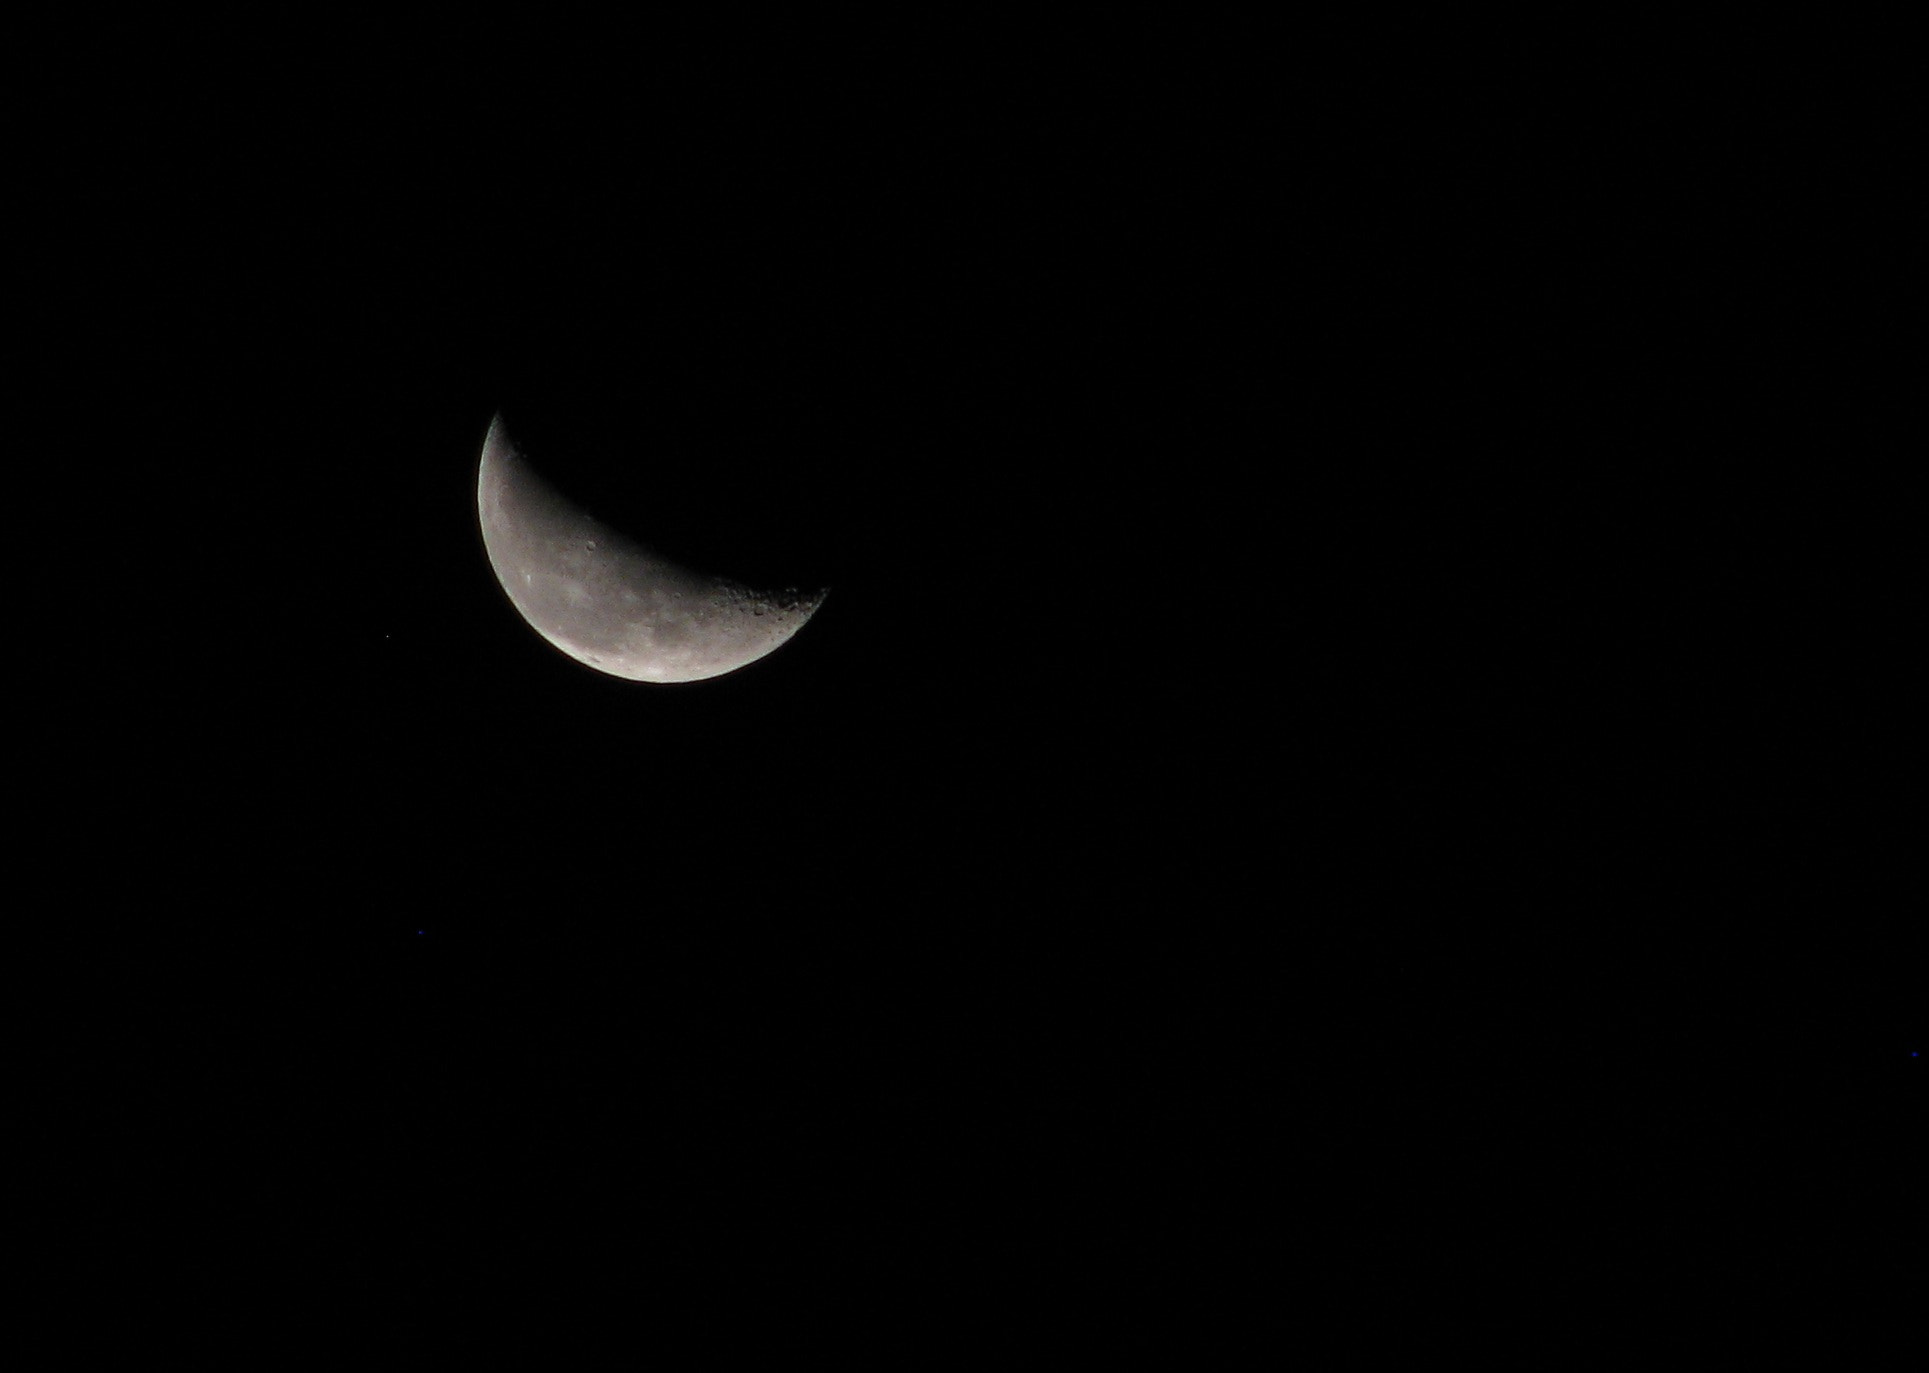 Photograph Another shy moon by Luis Aviles on 500px